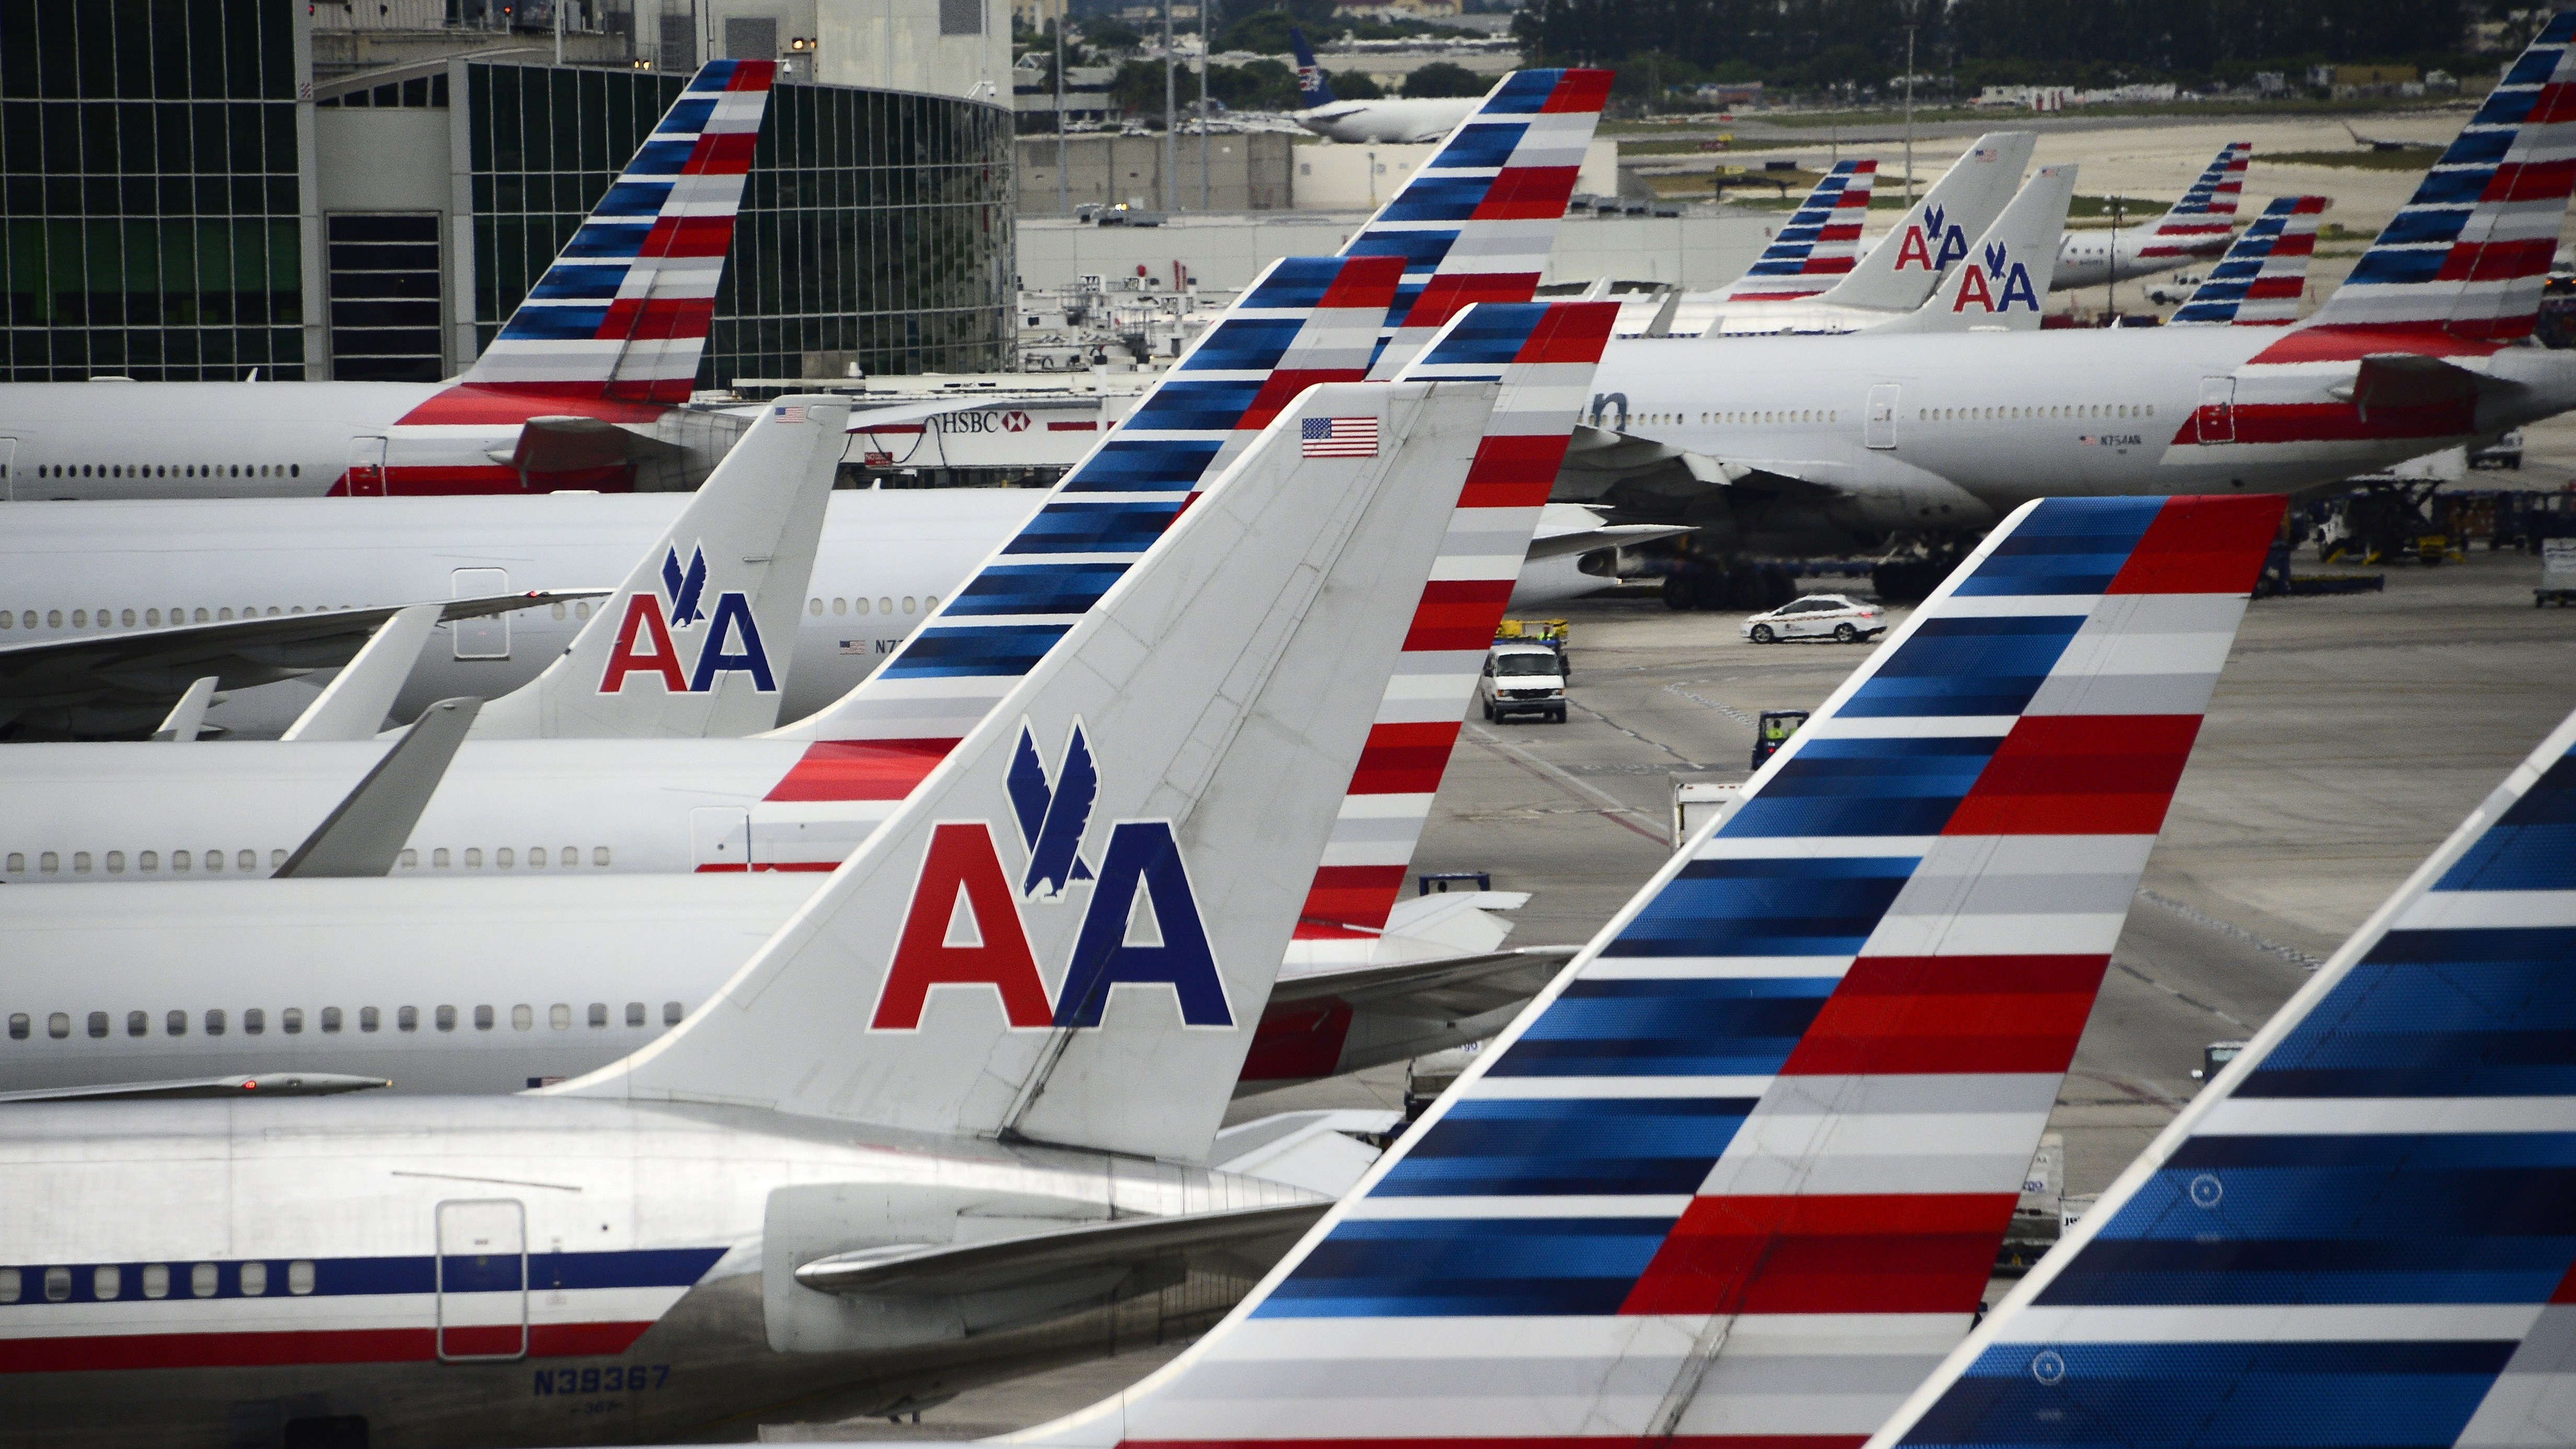 American Airlines flights during holidays now without pilots, says union